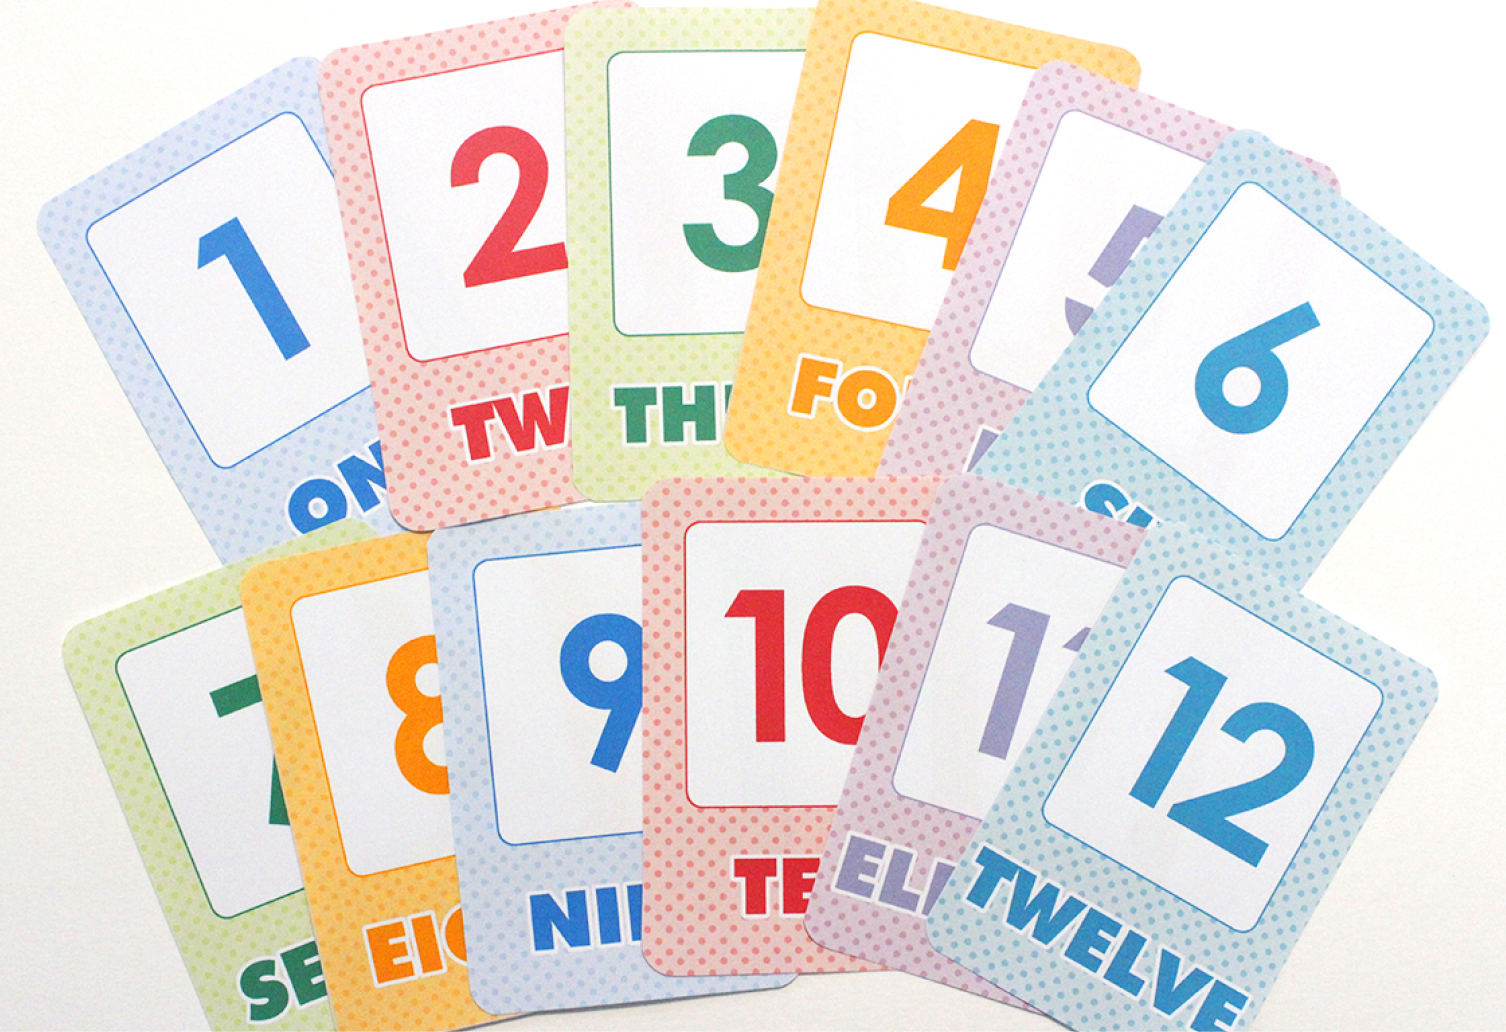 image about Printable Number Flashcards titled No cost Printable: Easy Range Flash Playing cards